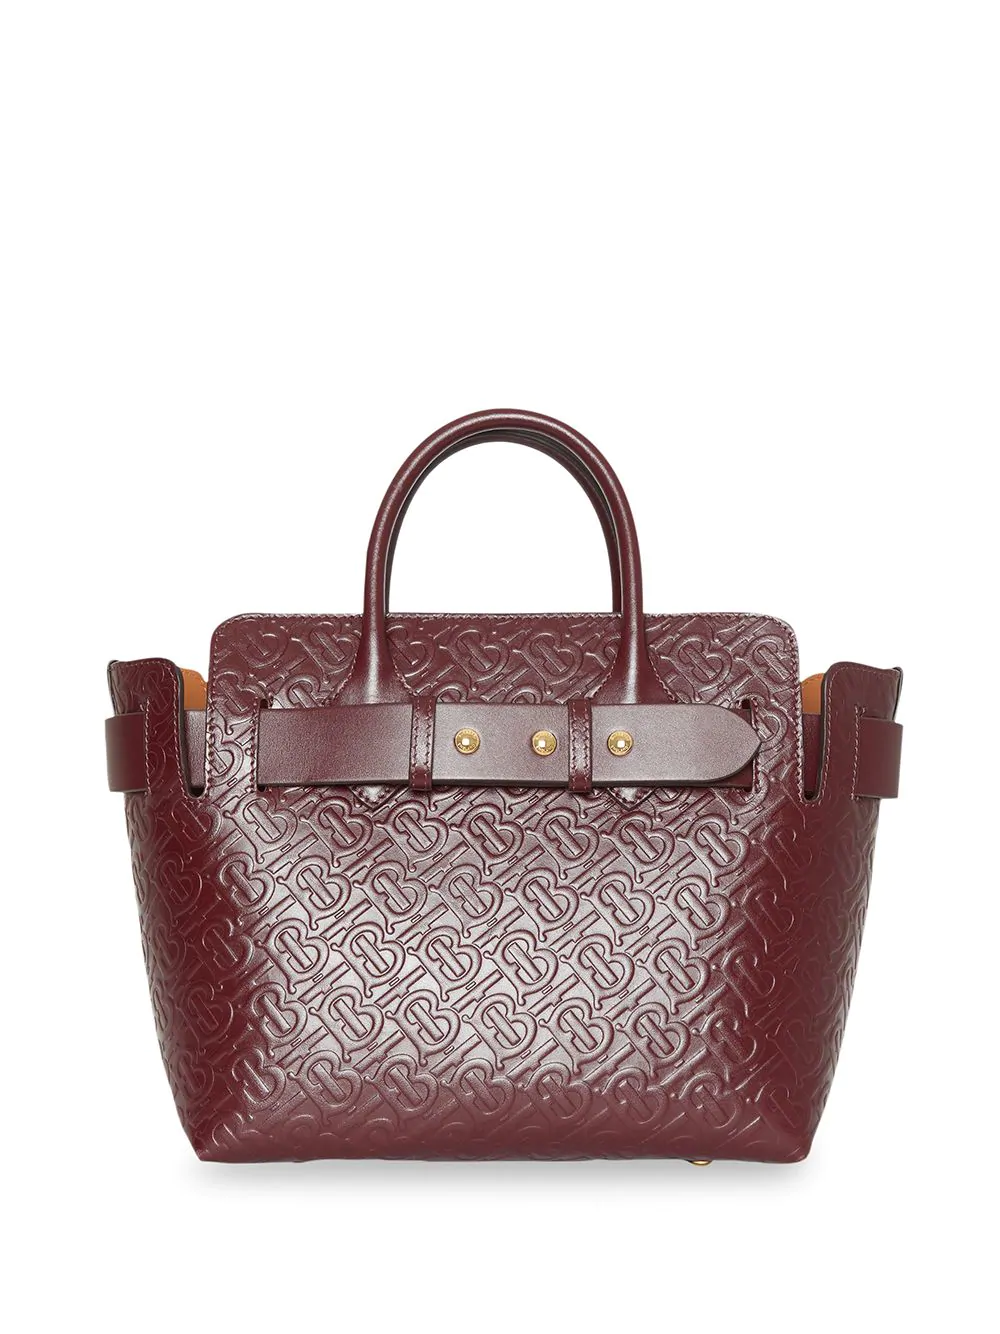 b0984354c5e0 Burberry The Small Monogram Leather Triple Stud Belt Bag In Red. Farfetch